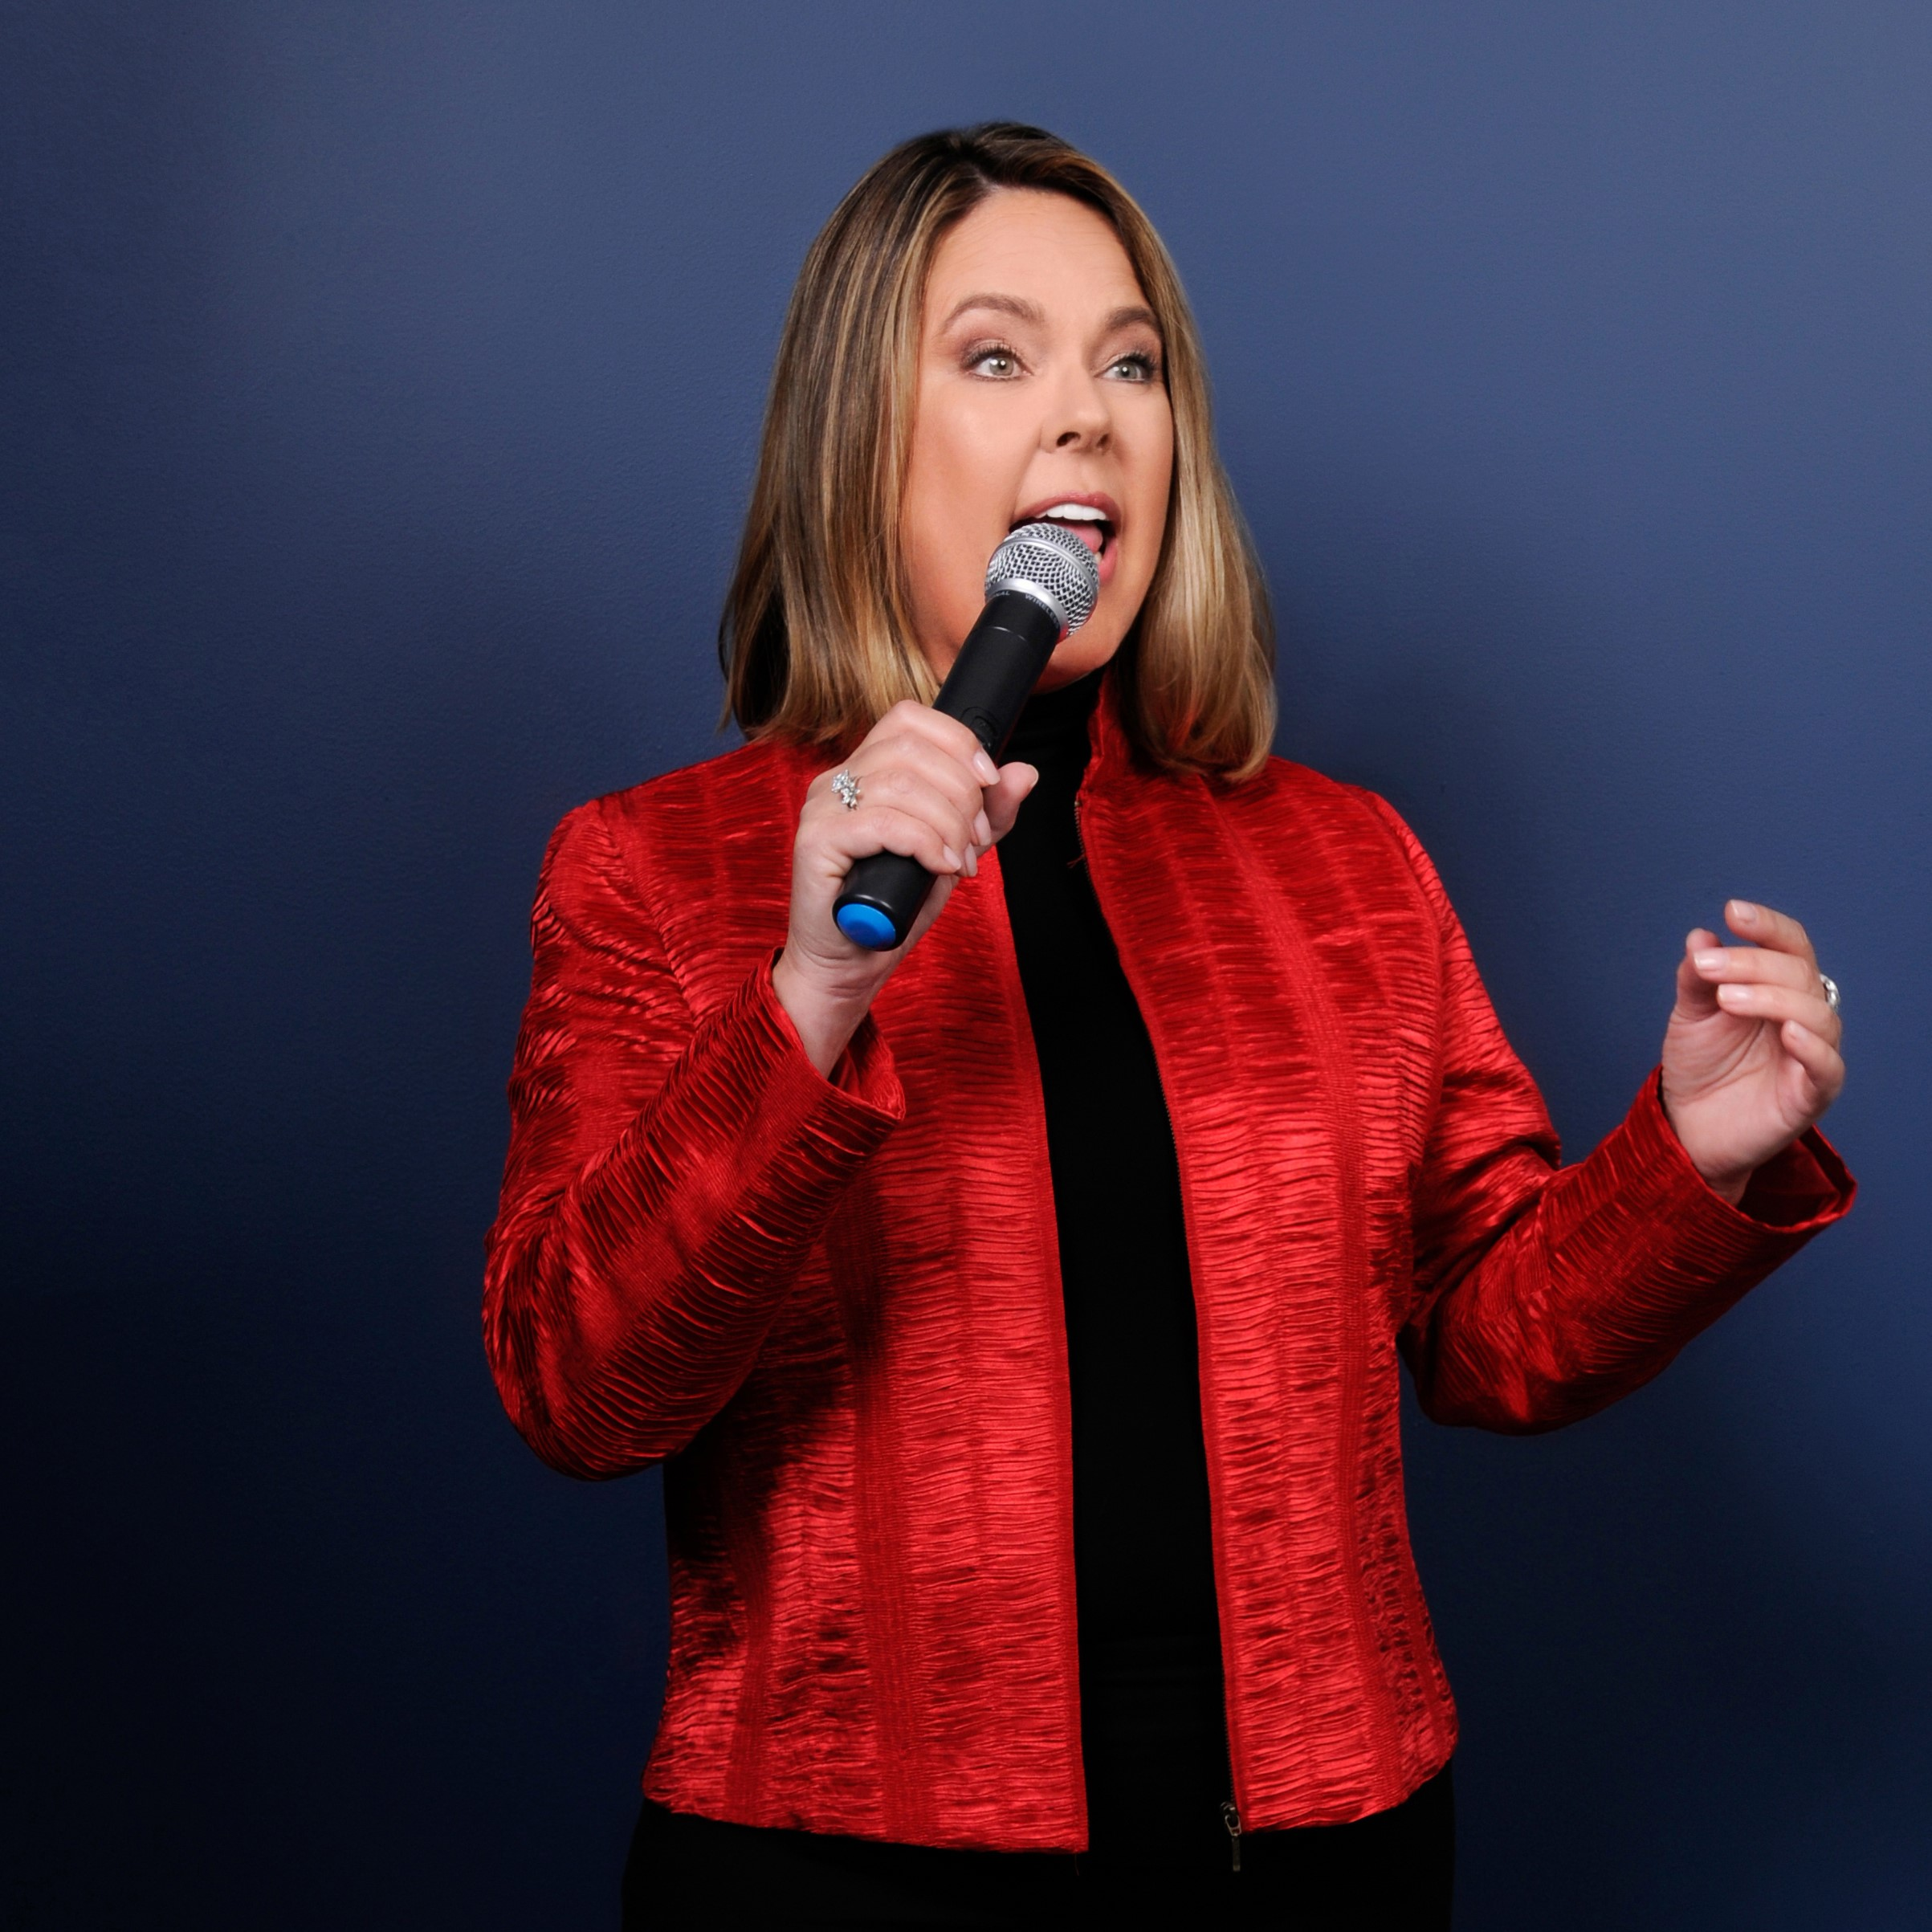 Rachel Cartwright speaking on blue background in red jacket